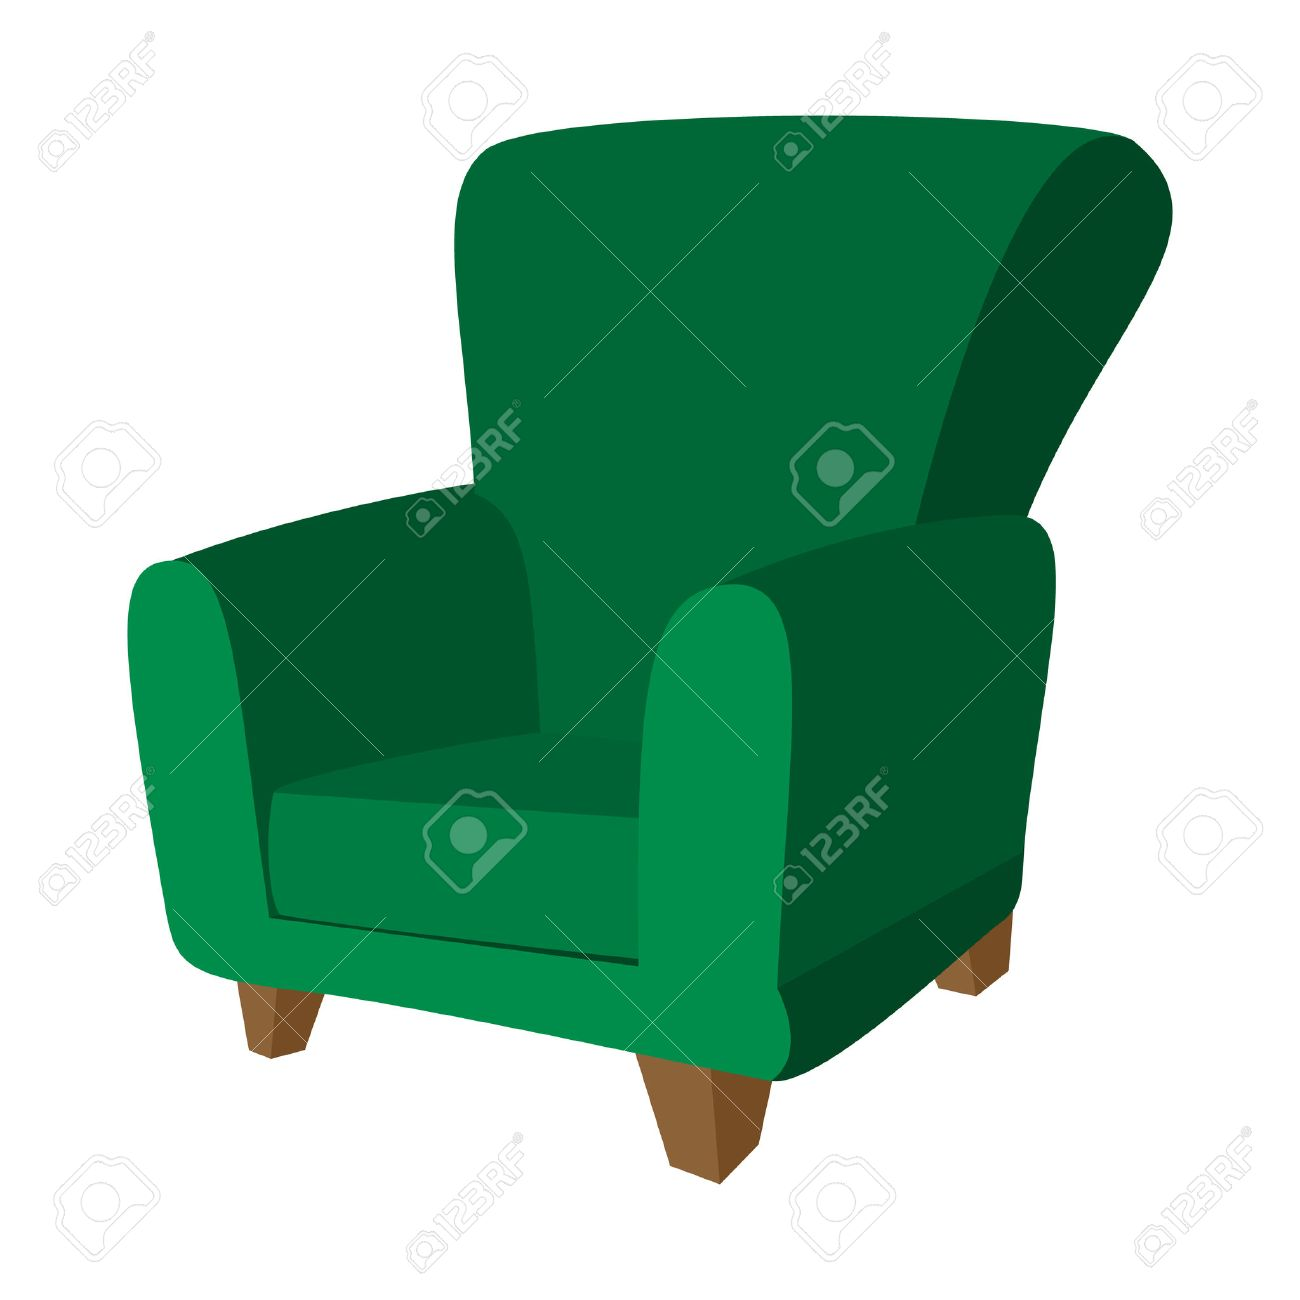 Green Armchair Cartoon Icon On A White Background Stock Vector   51175962